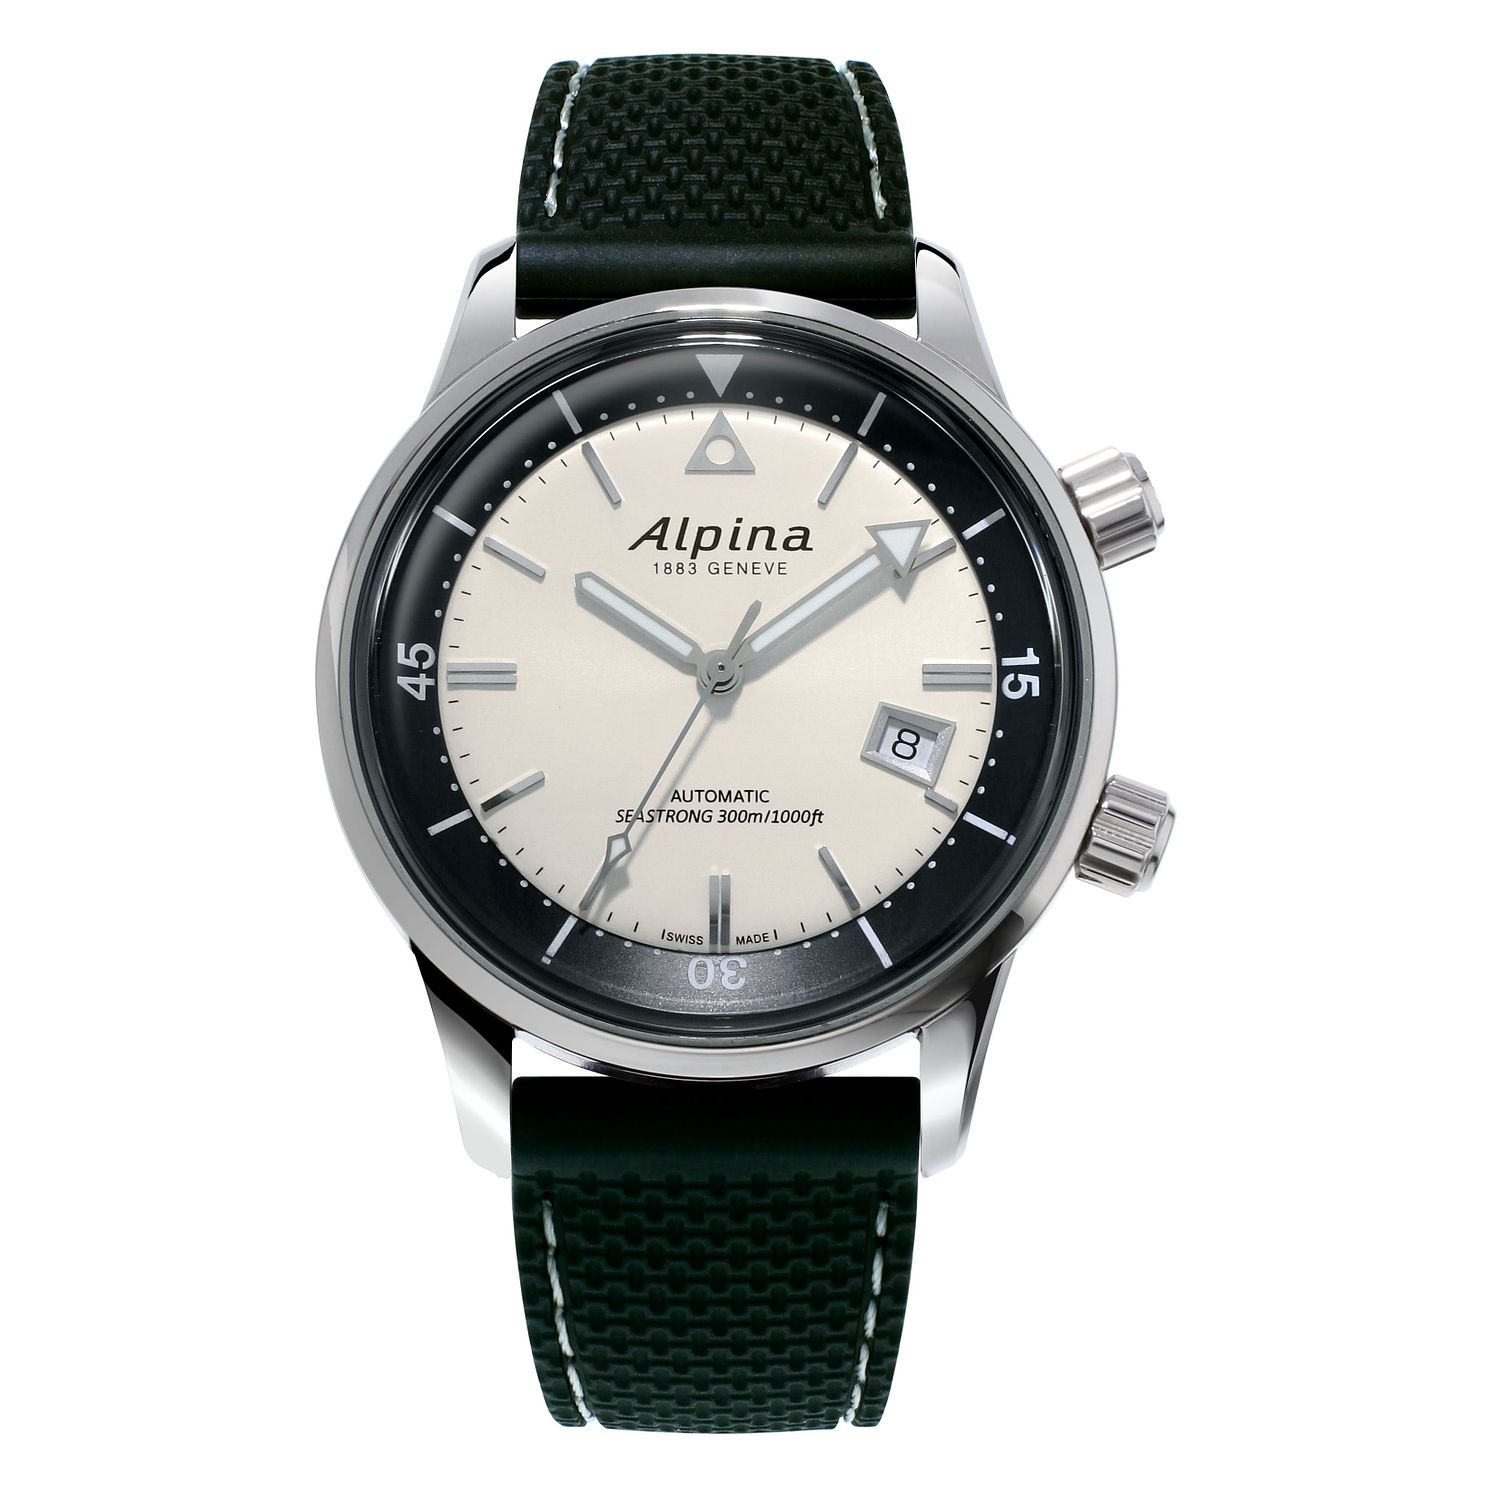 Alpina Seastrong Diver Heritage Black Rubber Strap Watch - Product number 2772868